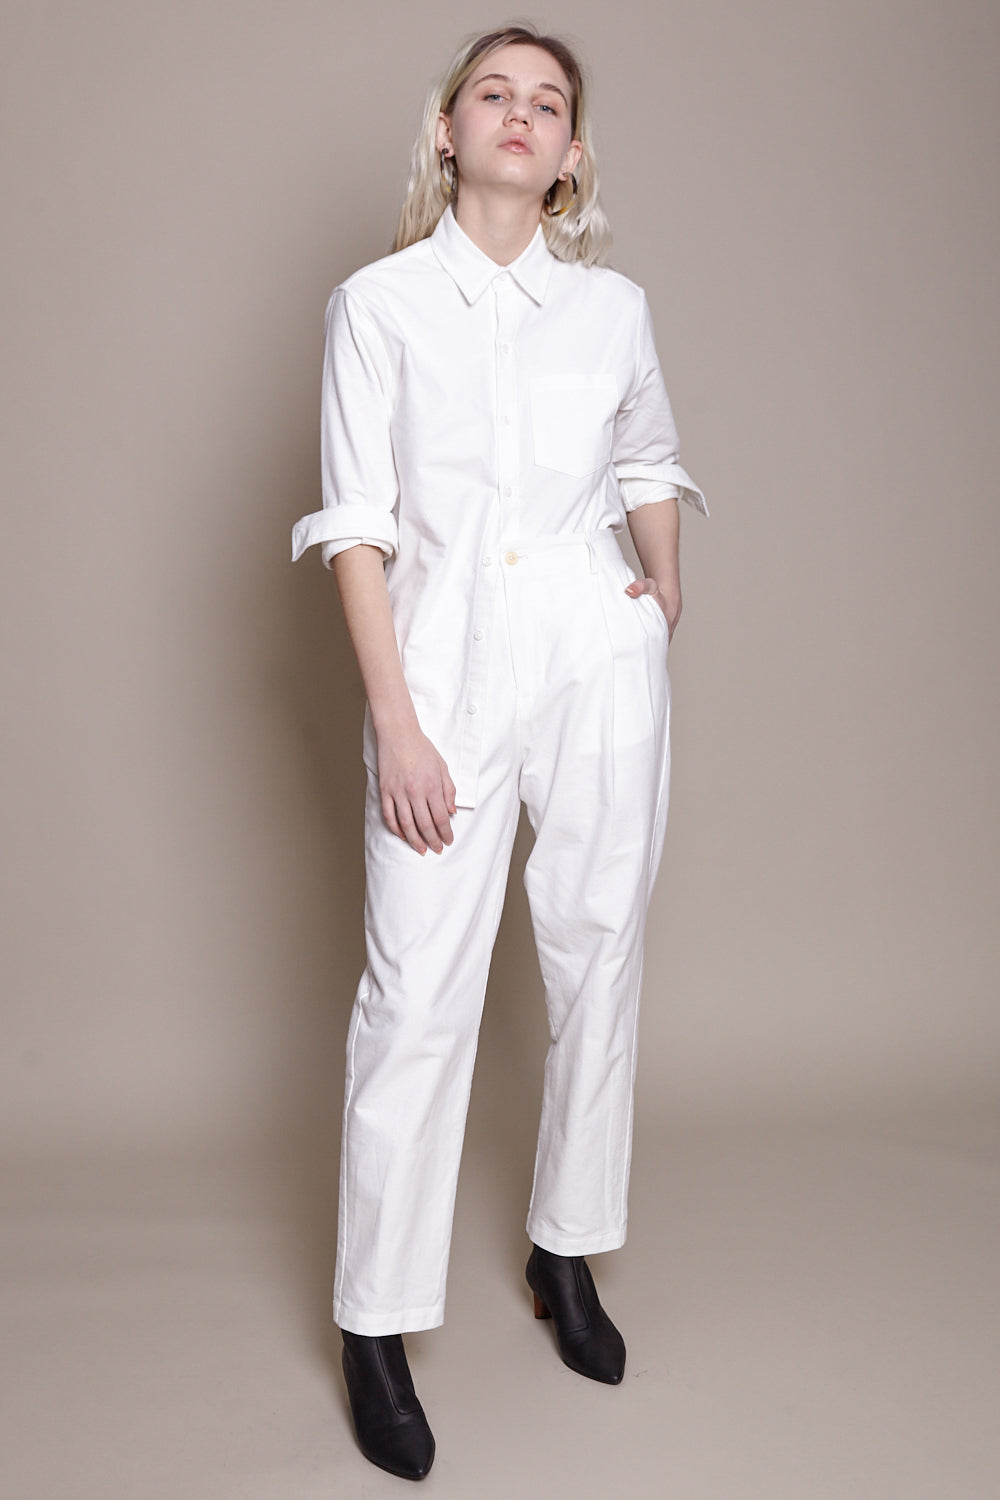 Blluemade Pleated Pant in White Flannel - Vert & Vogue